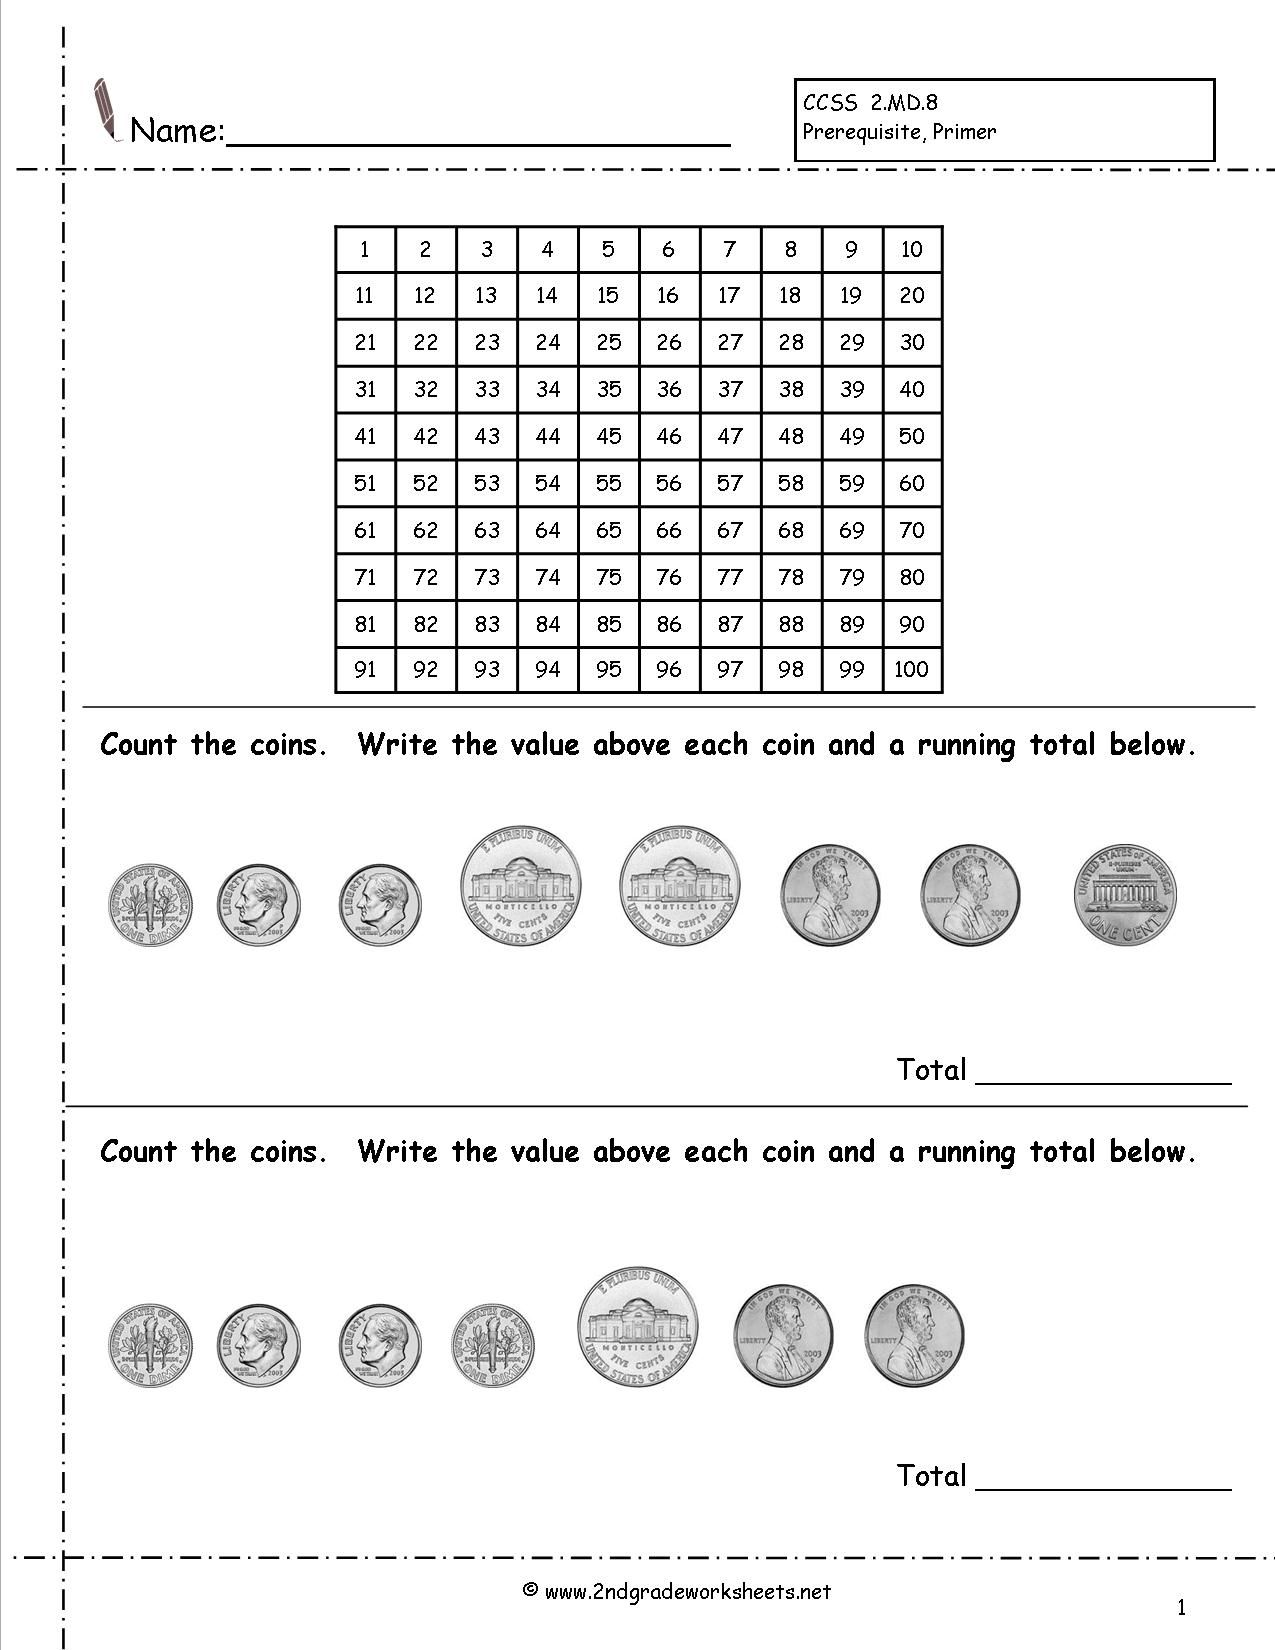 Ccss 2 Md 8 Worksheets Counting Coins Worksheets Money Wordproblems Worksheets Counting Coins Worksheet Money Worksheets Money Math Worksheets